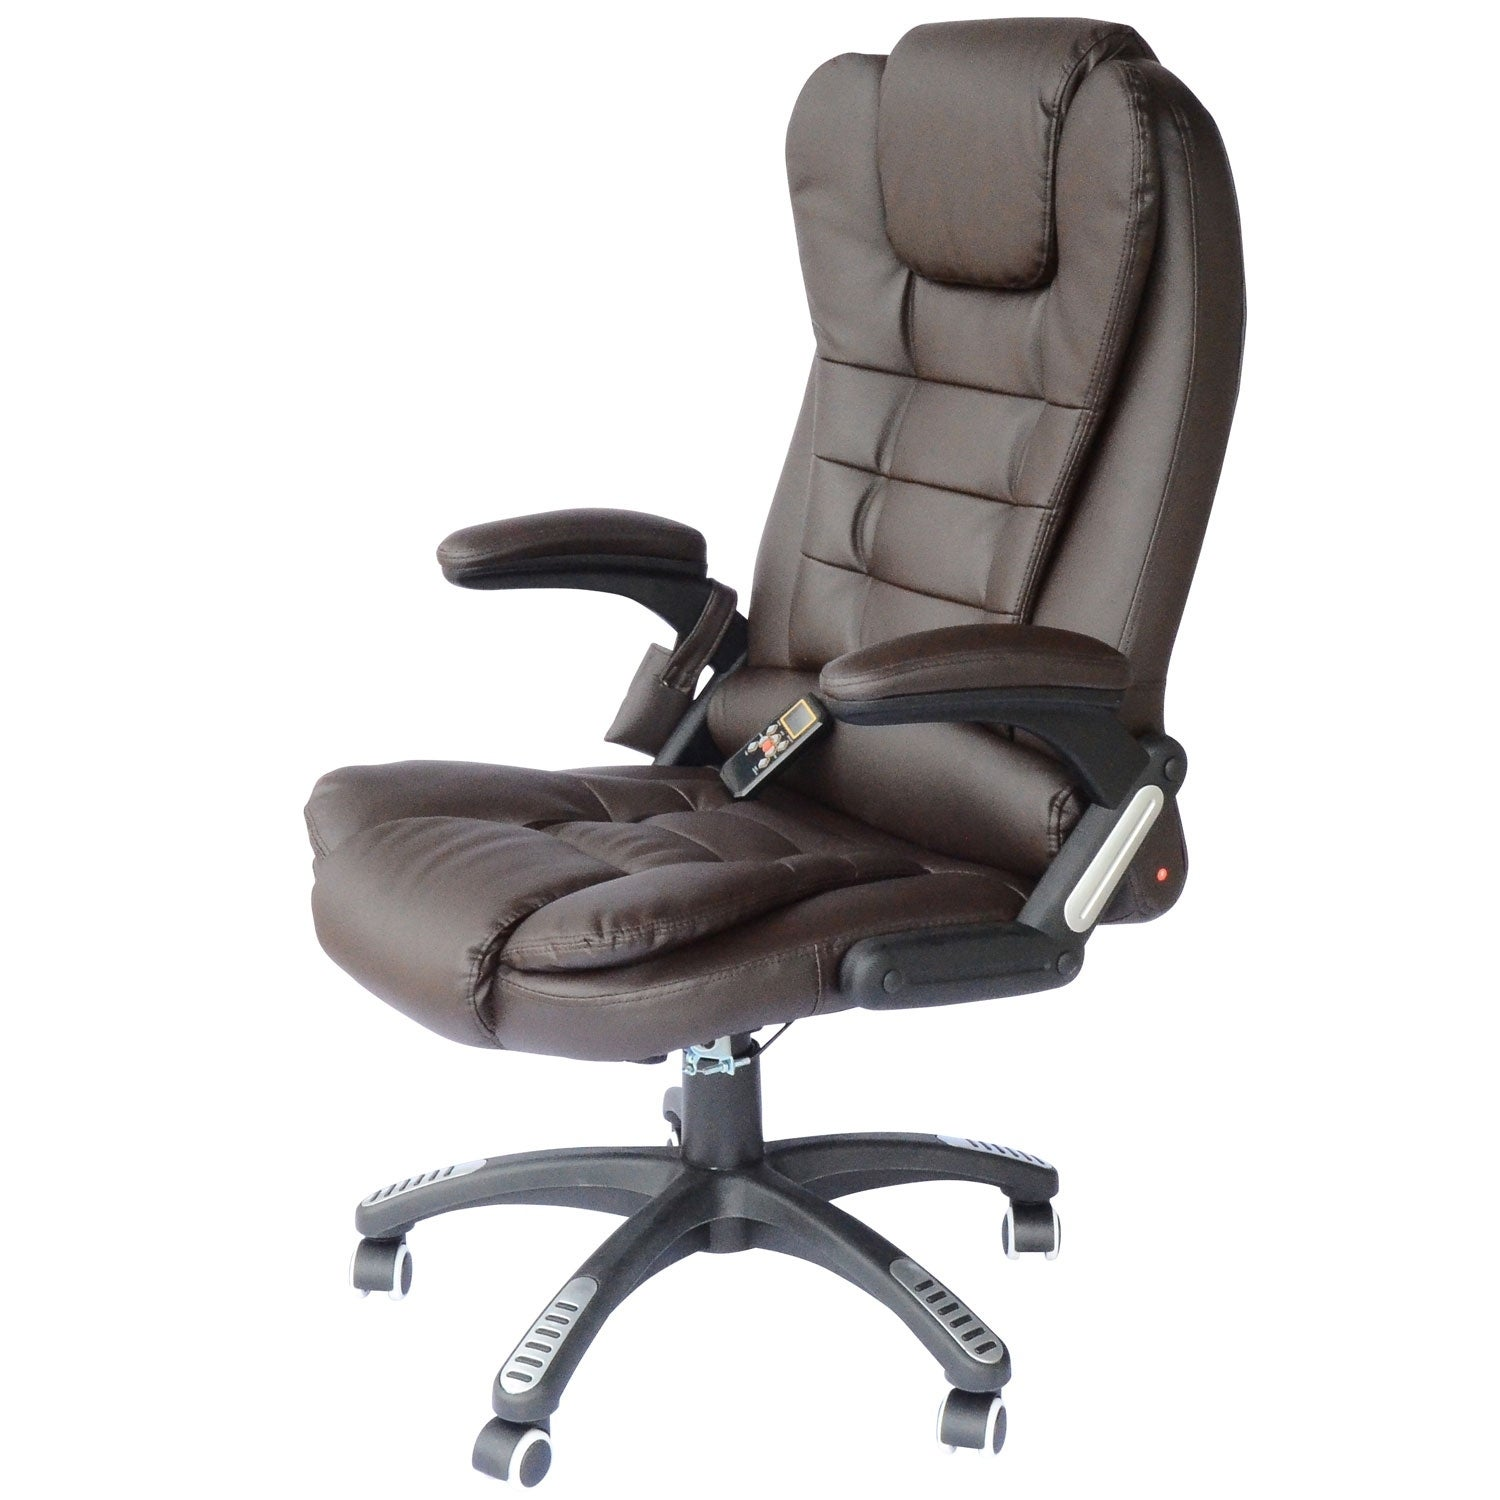 Superieur Shop HomCom Executive Ergonomic Heated Vibrating Massage Office Chair   Brown   Free Shipping Today   Overstock.com   18088215